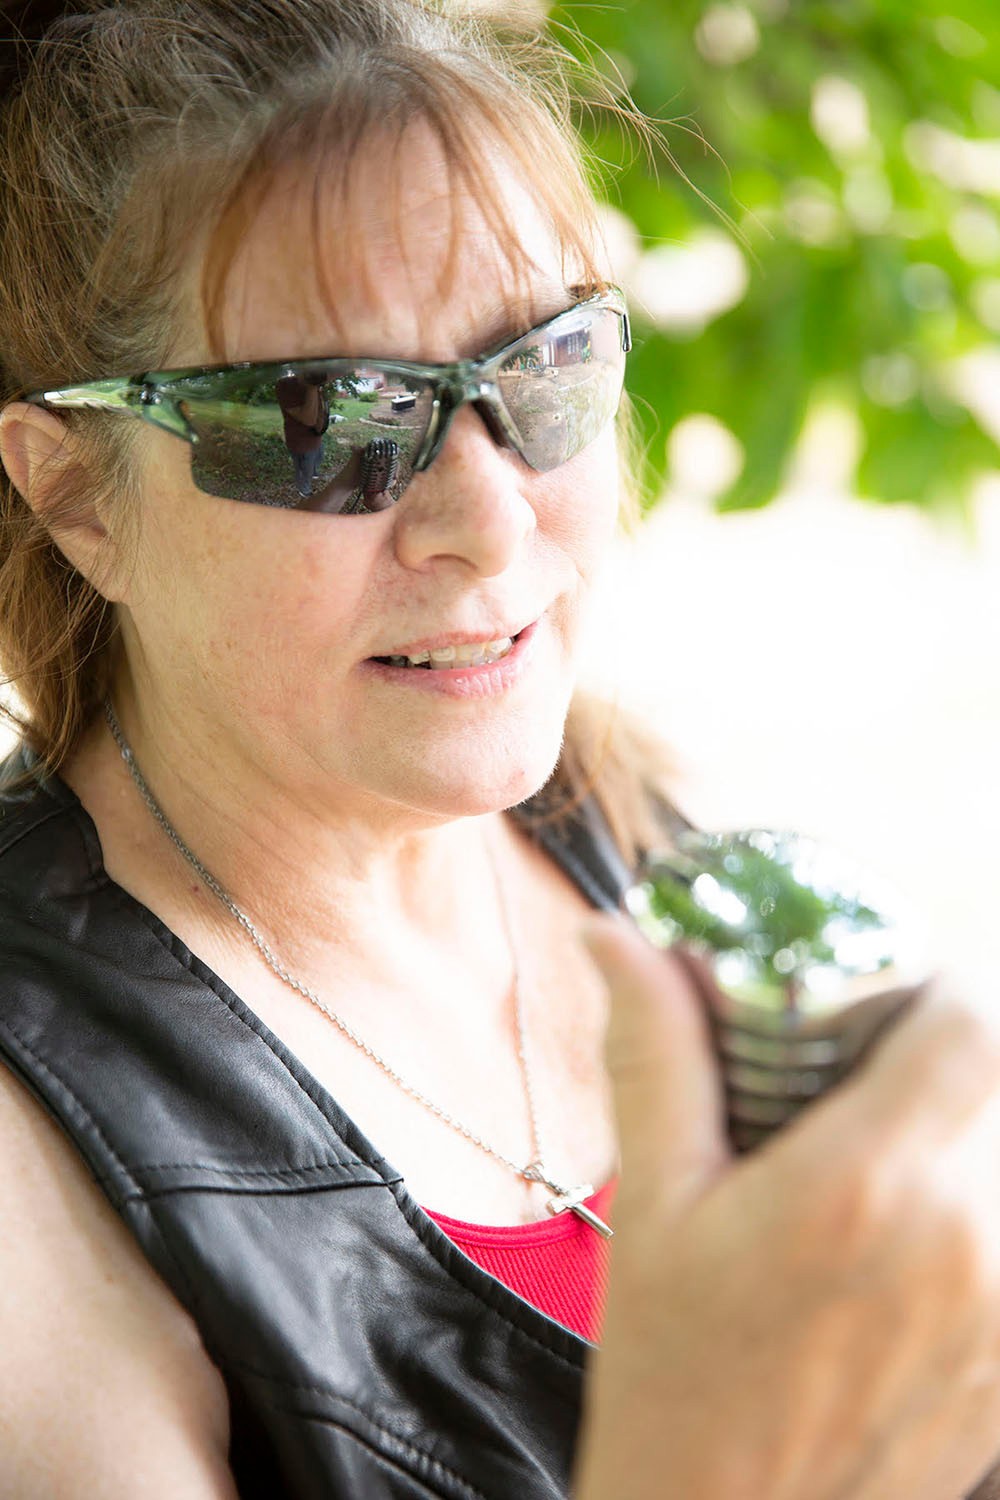 brunette woman with sunglasses smiles and holds a classic chrome microphone under a large tree